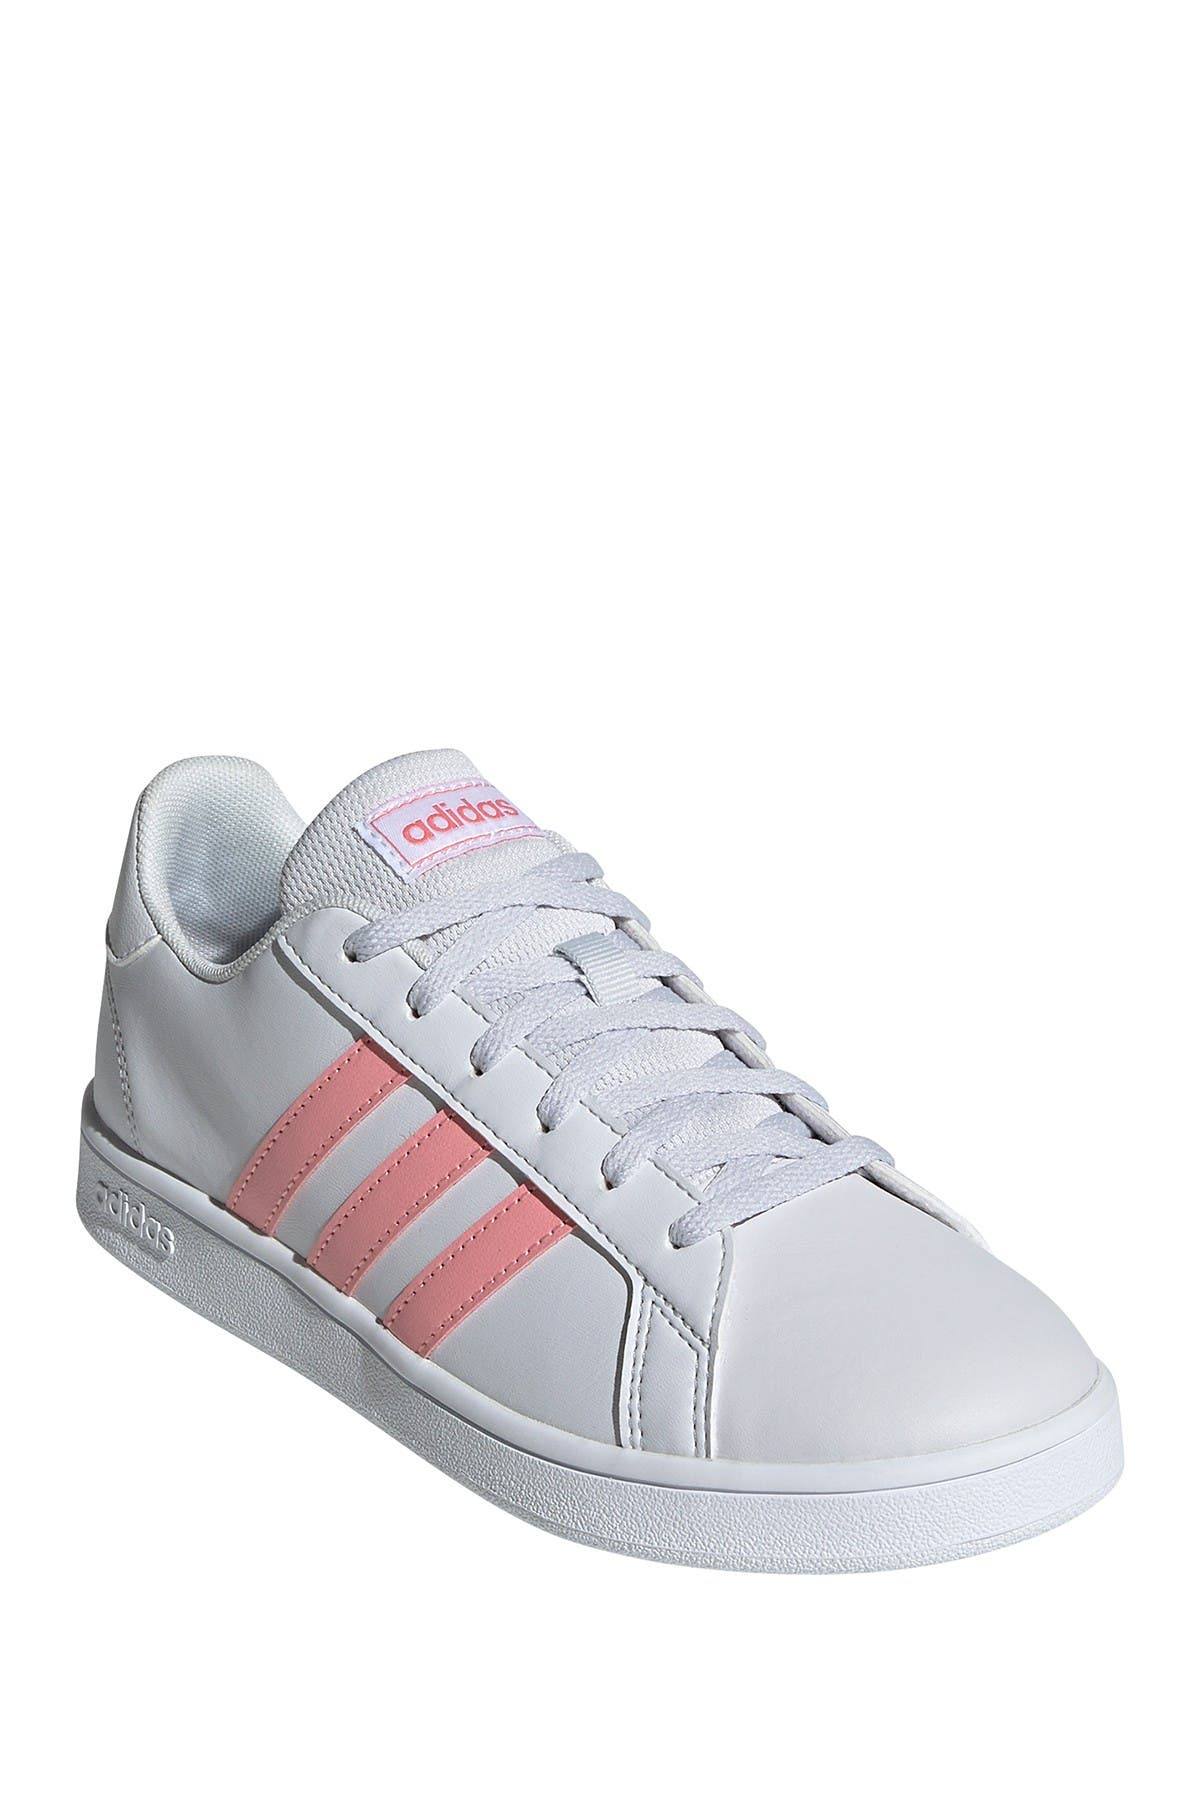 Image of adidas Grand Court K Leather Sneaker